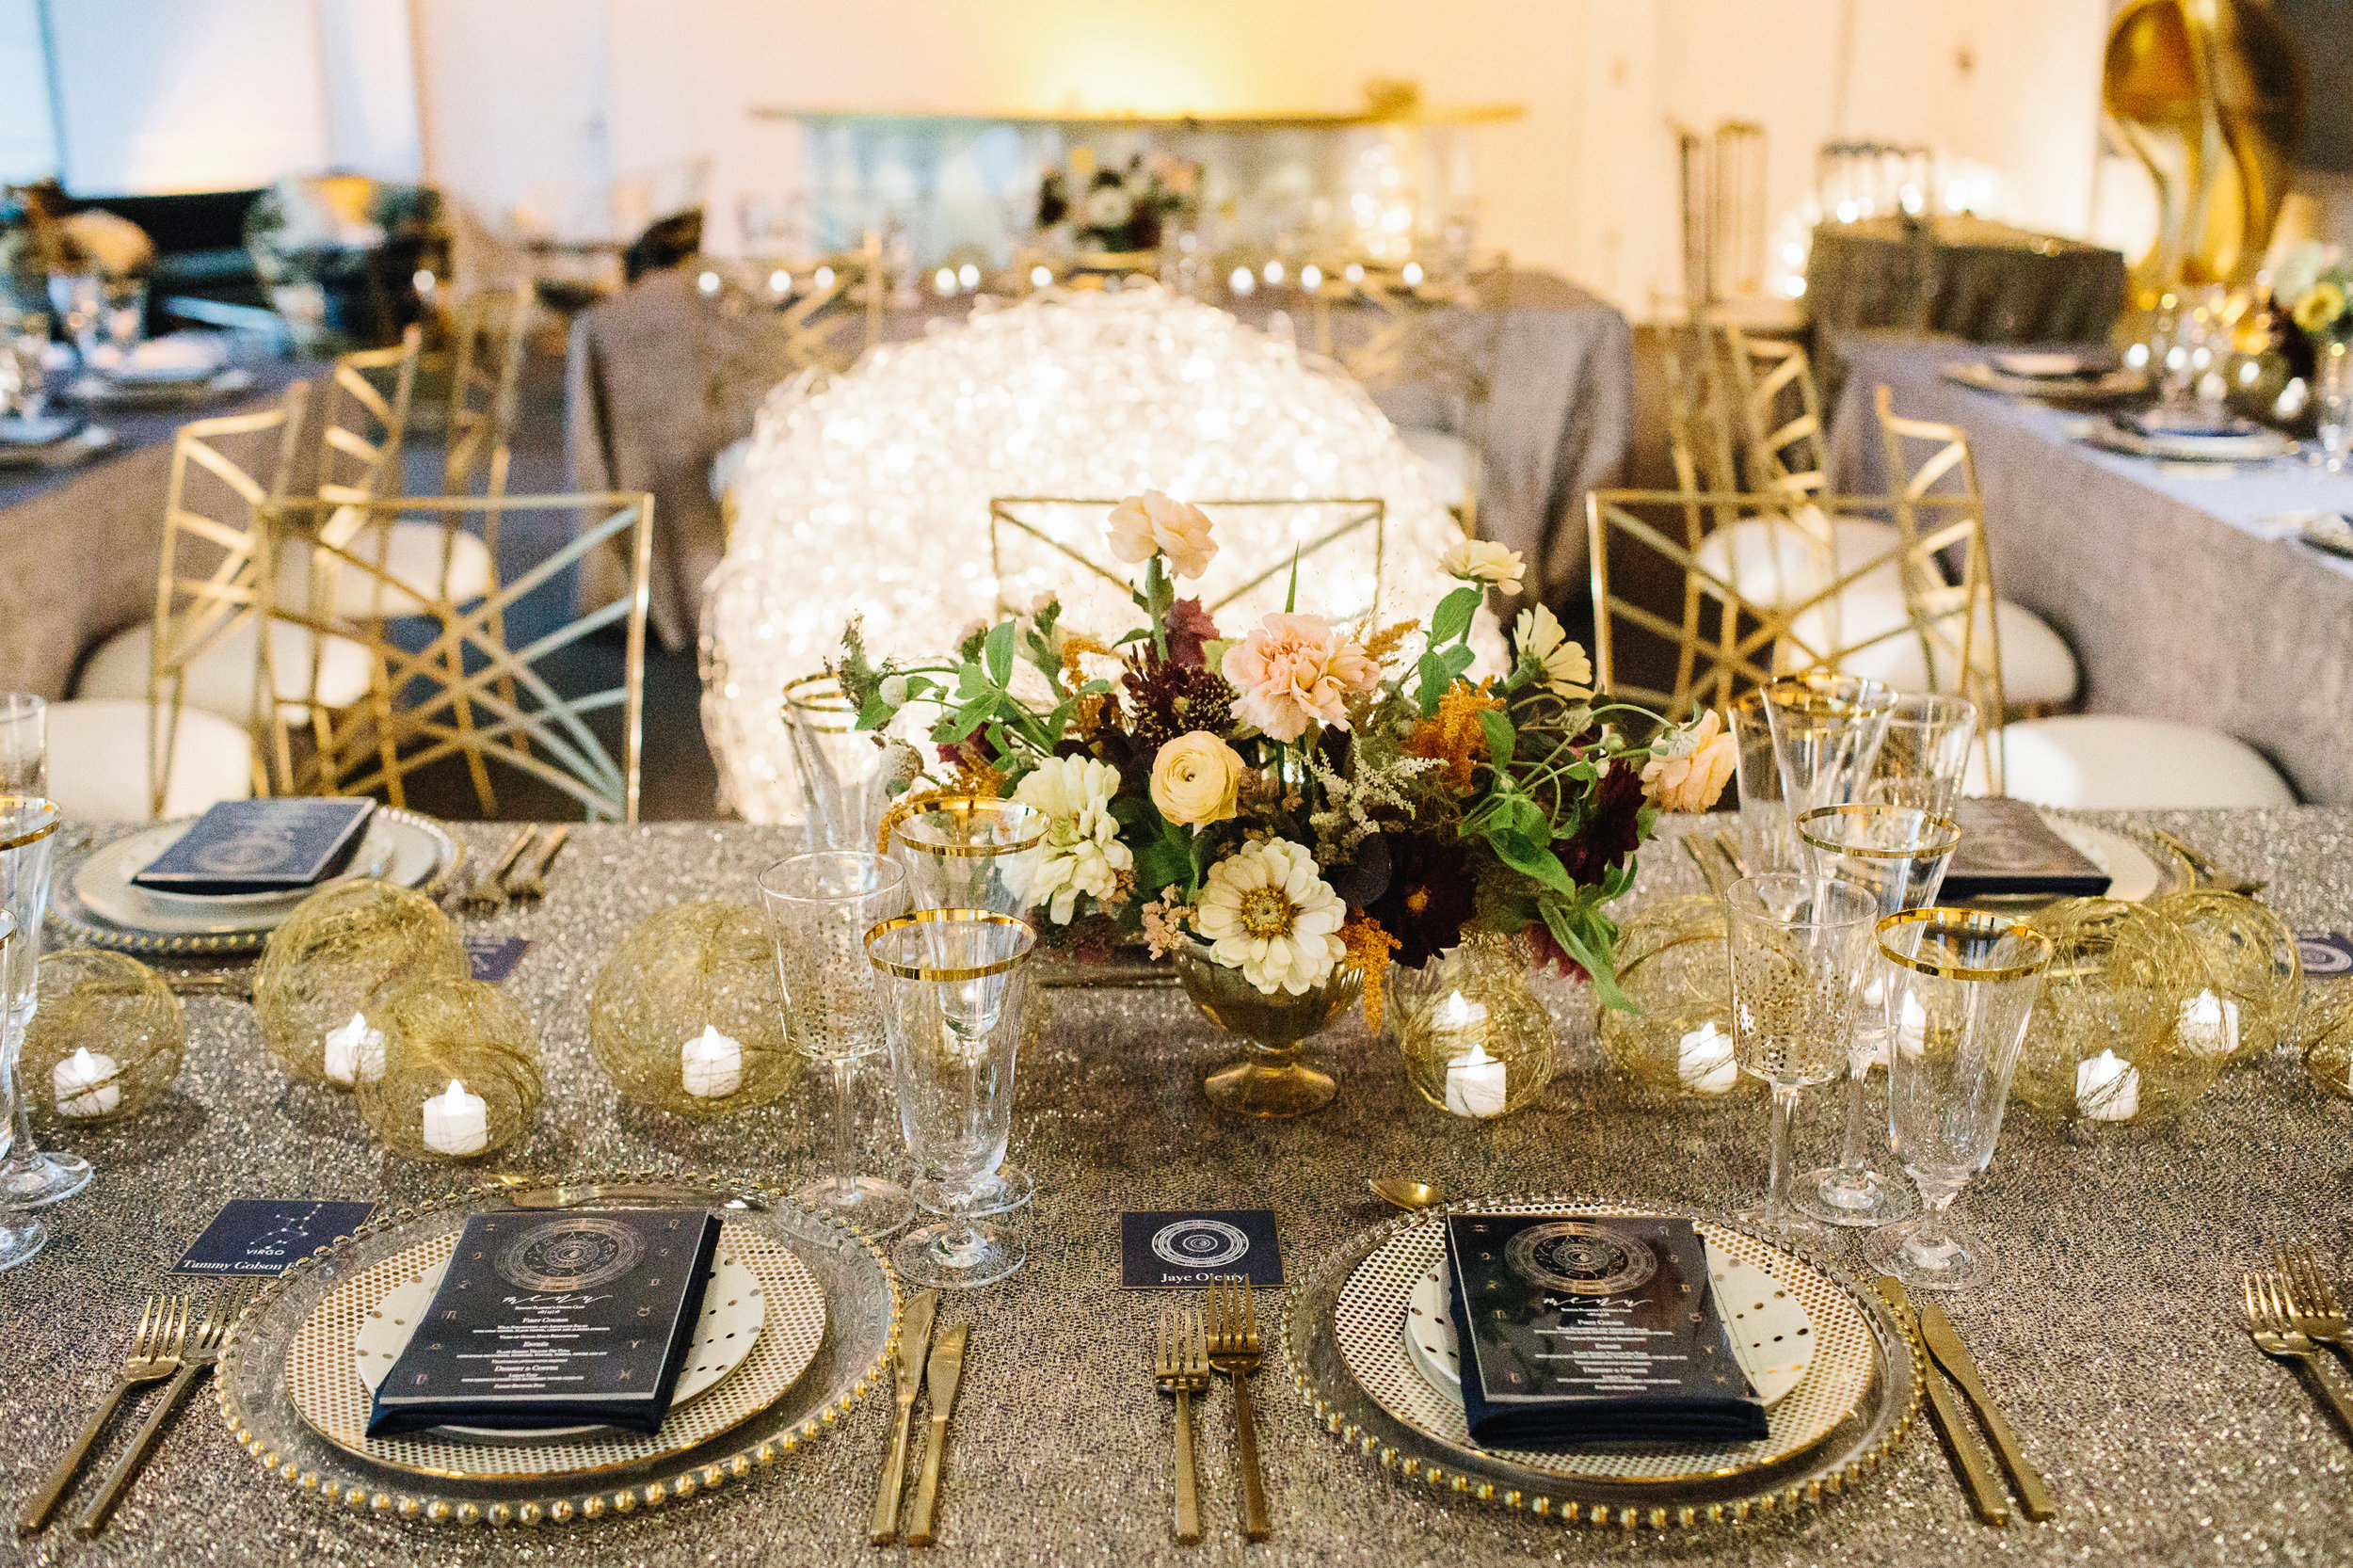 Rentals by PEAK Event Services, Flowers by Sweet Annie Floral, Menus and Place cards by Simply B, and Lighting by Suzanne B Lowell.  Photo by Lindsay Hite Photography .